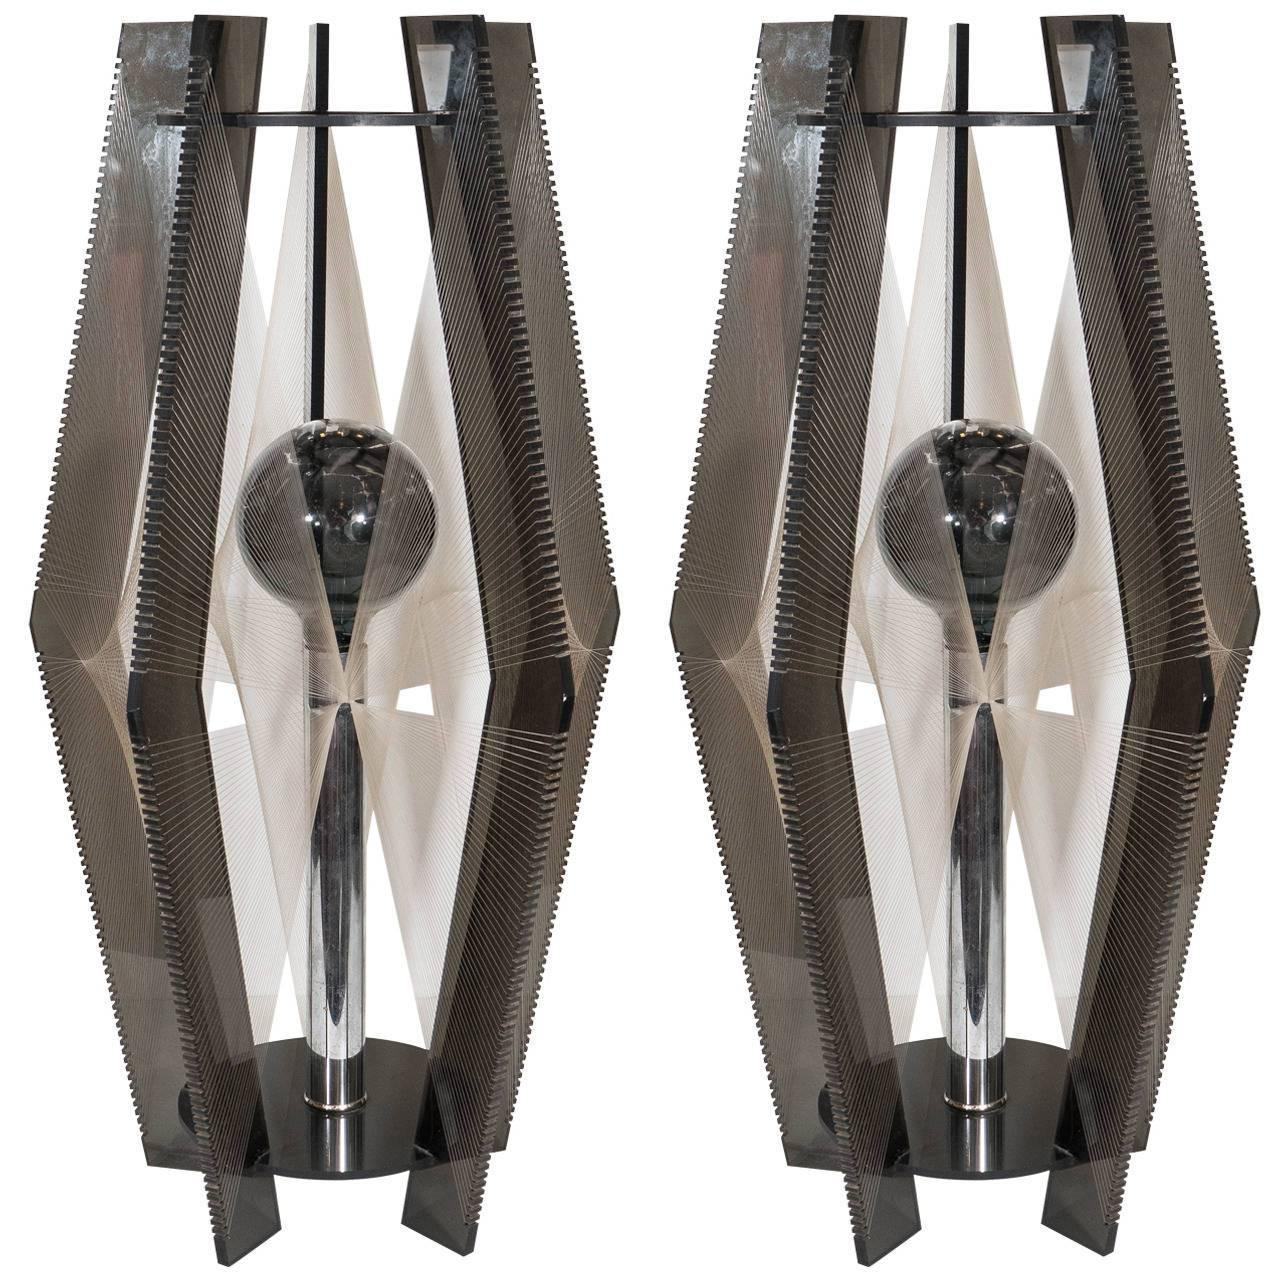 A Pair of Modernistic Smoked Lucite, Chrome and Threading Lamps, circa 1980s